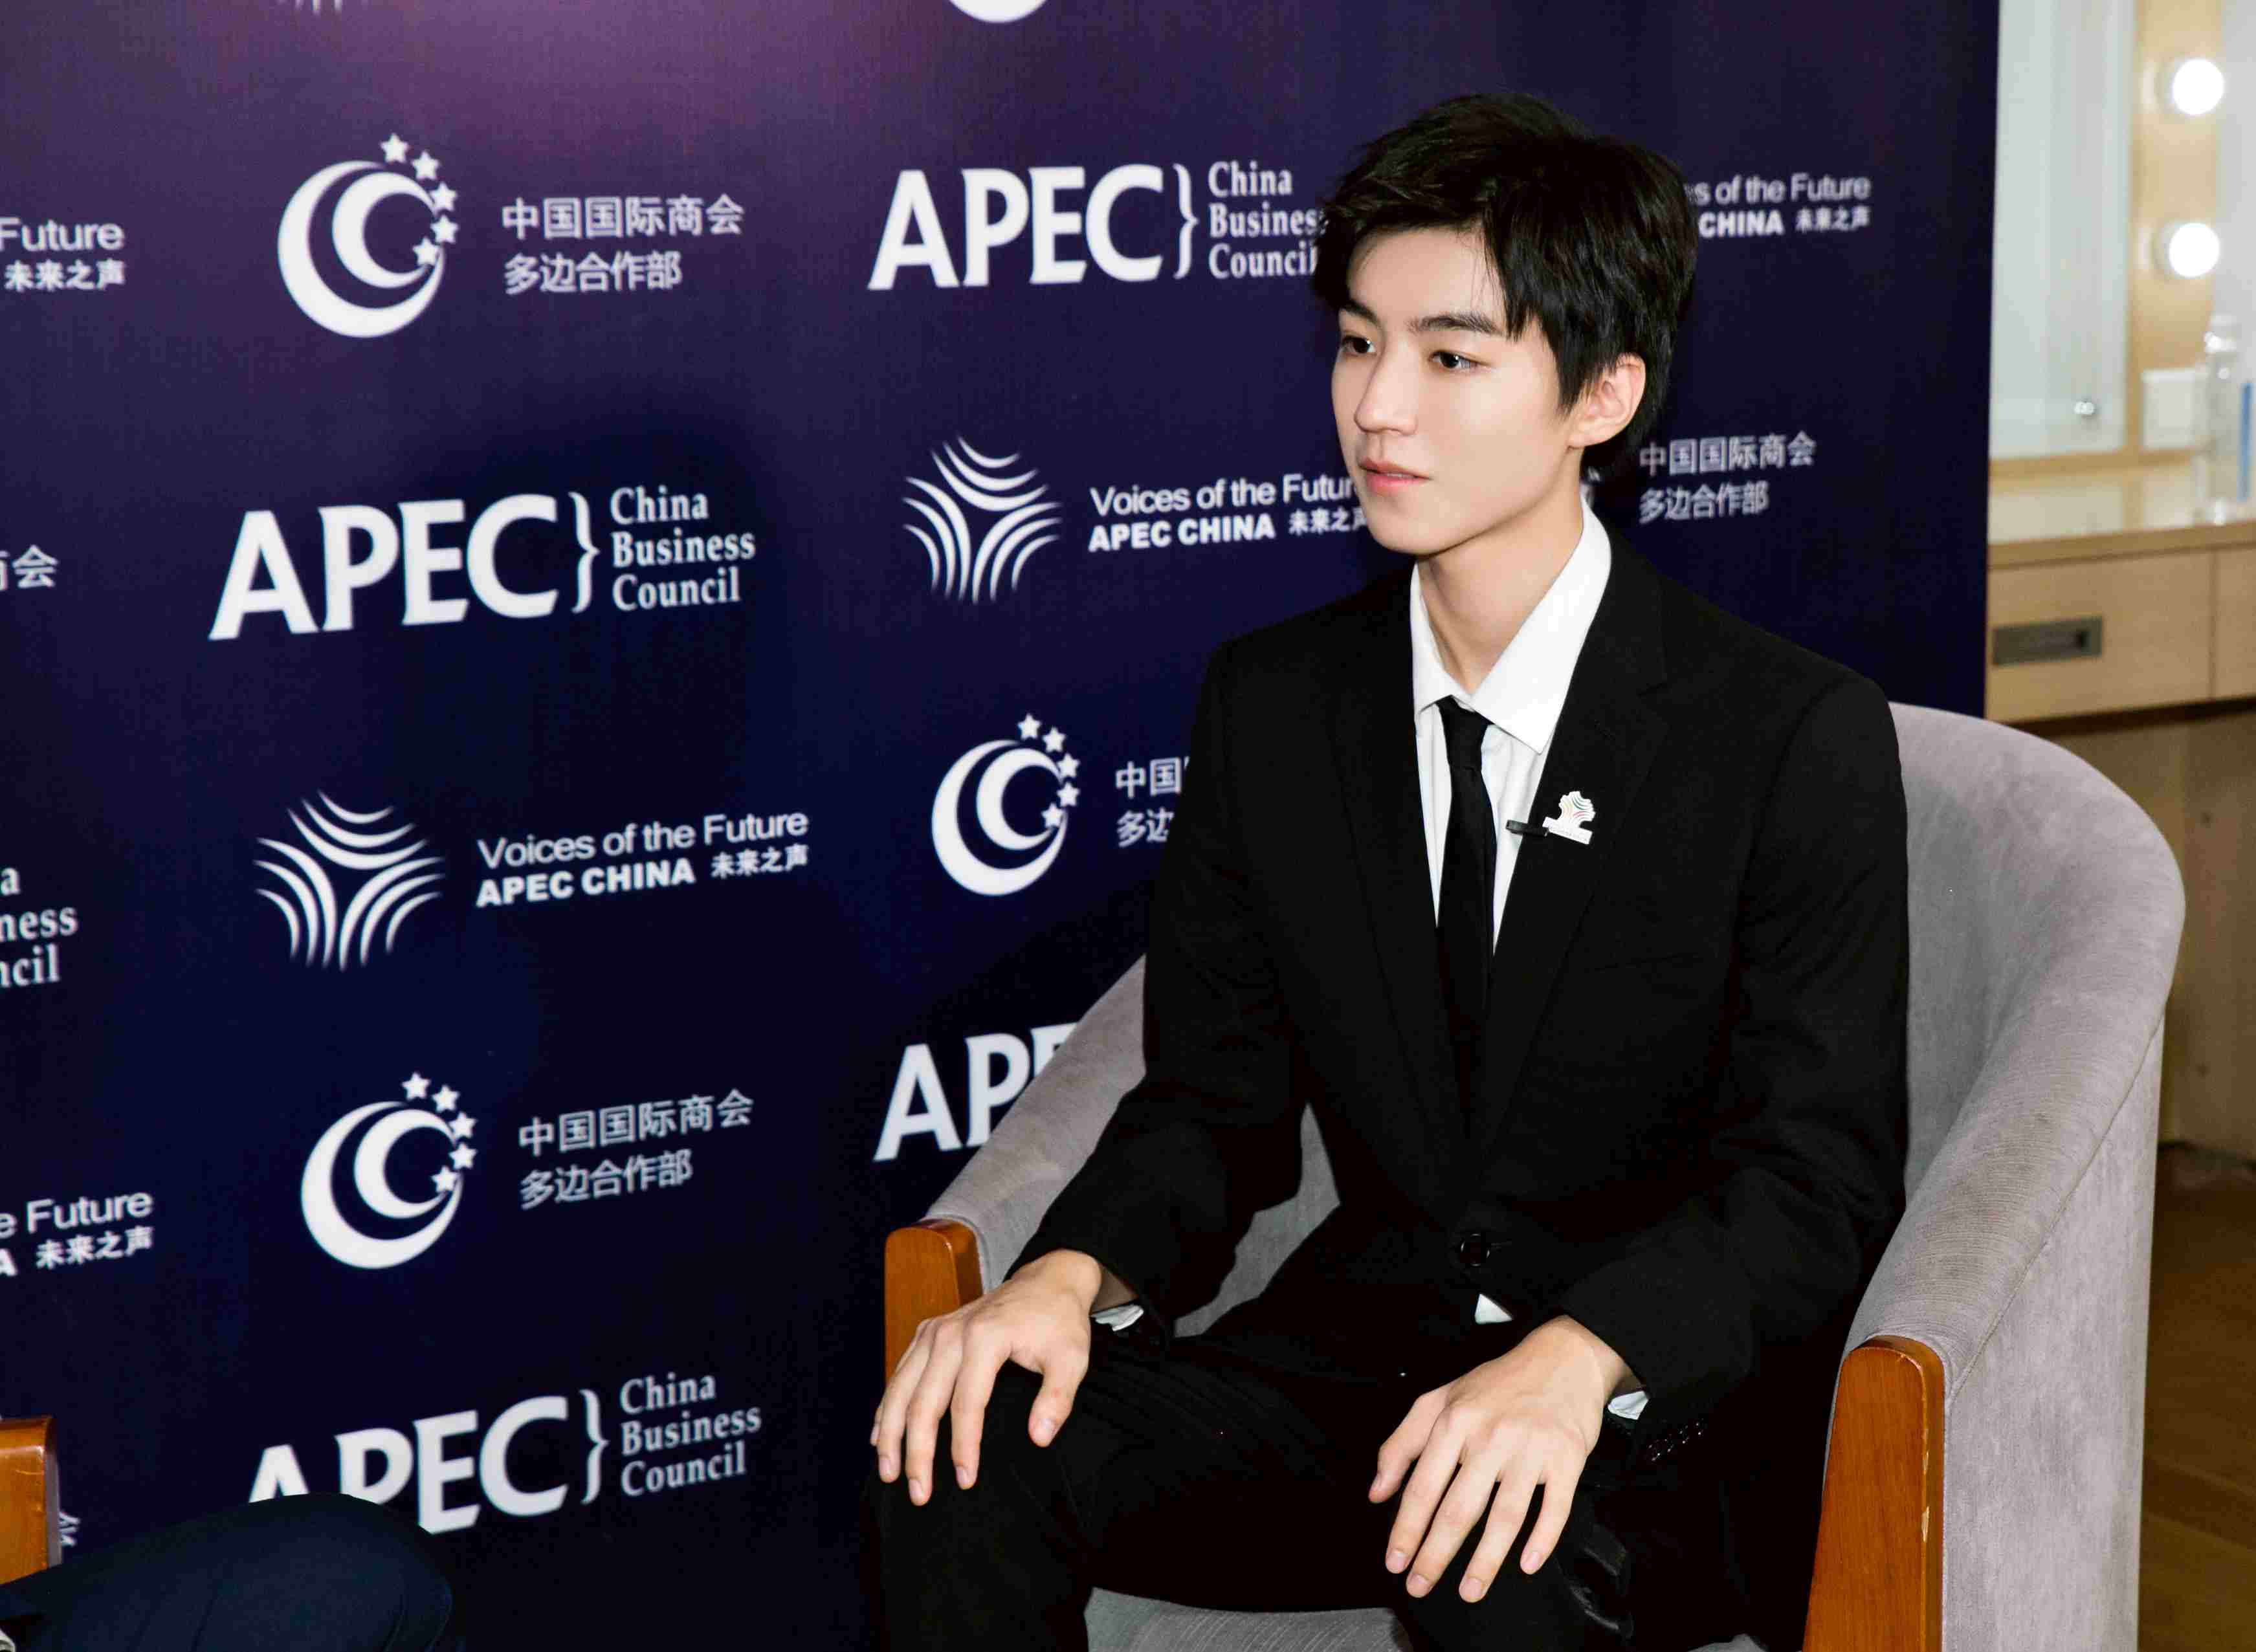 APEC youth program's China head: 'Never underestimate young people